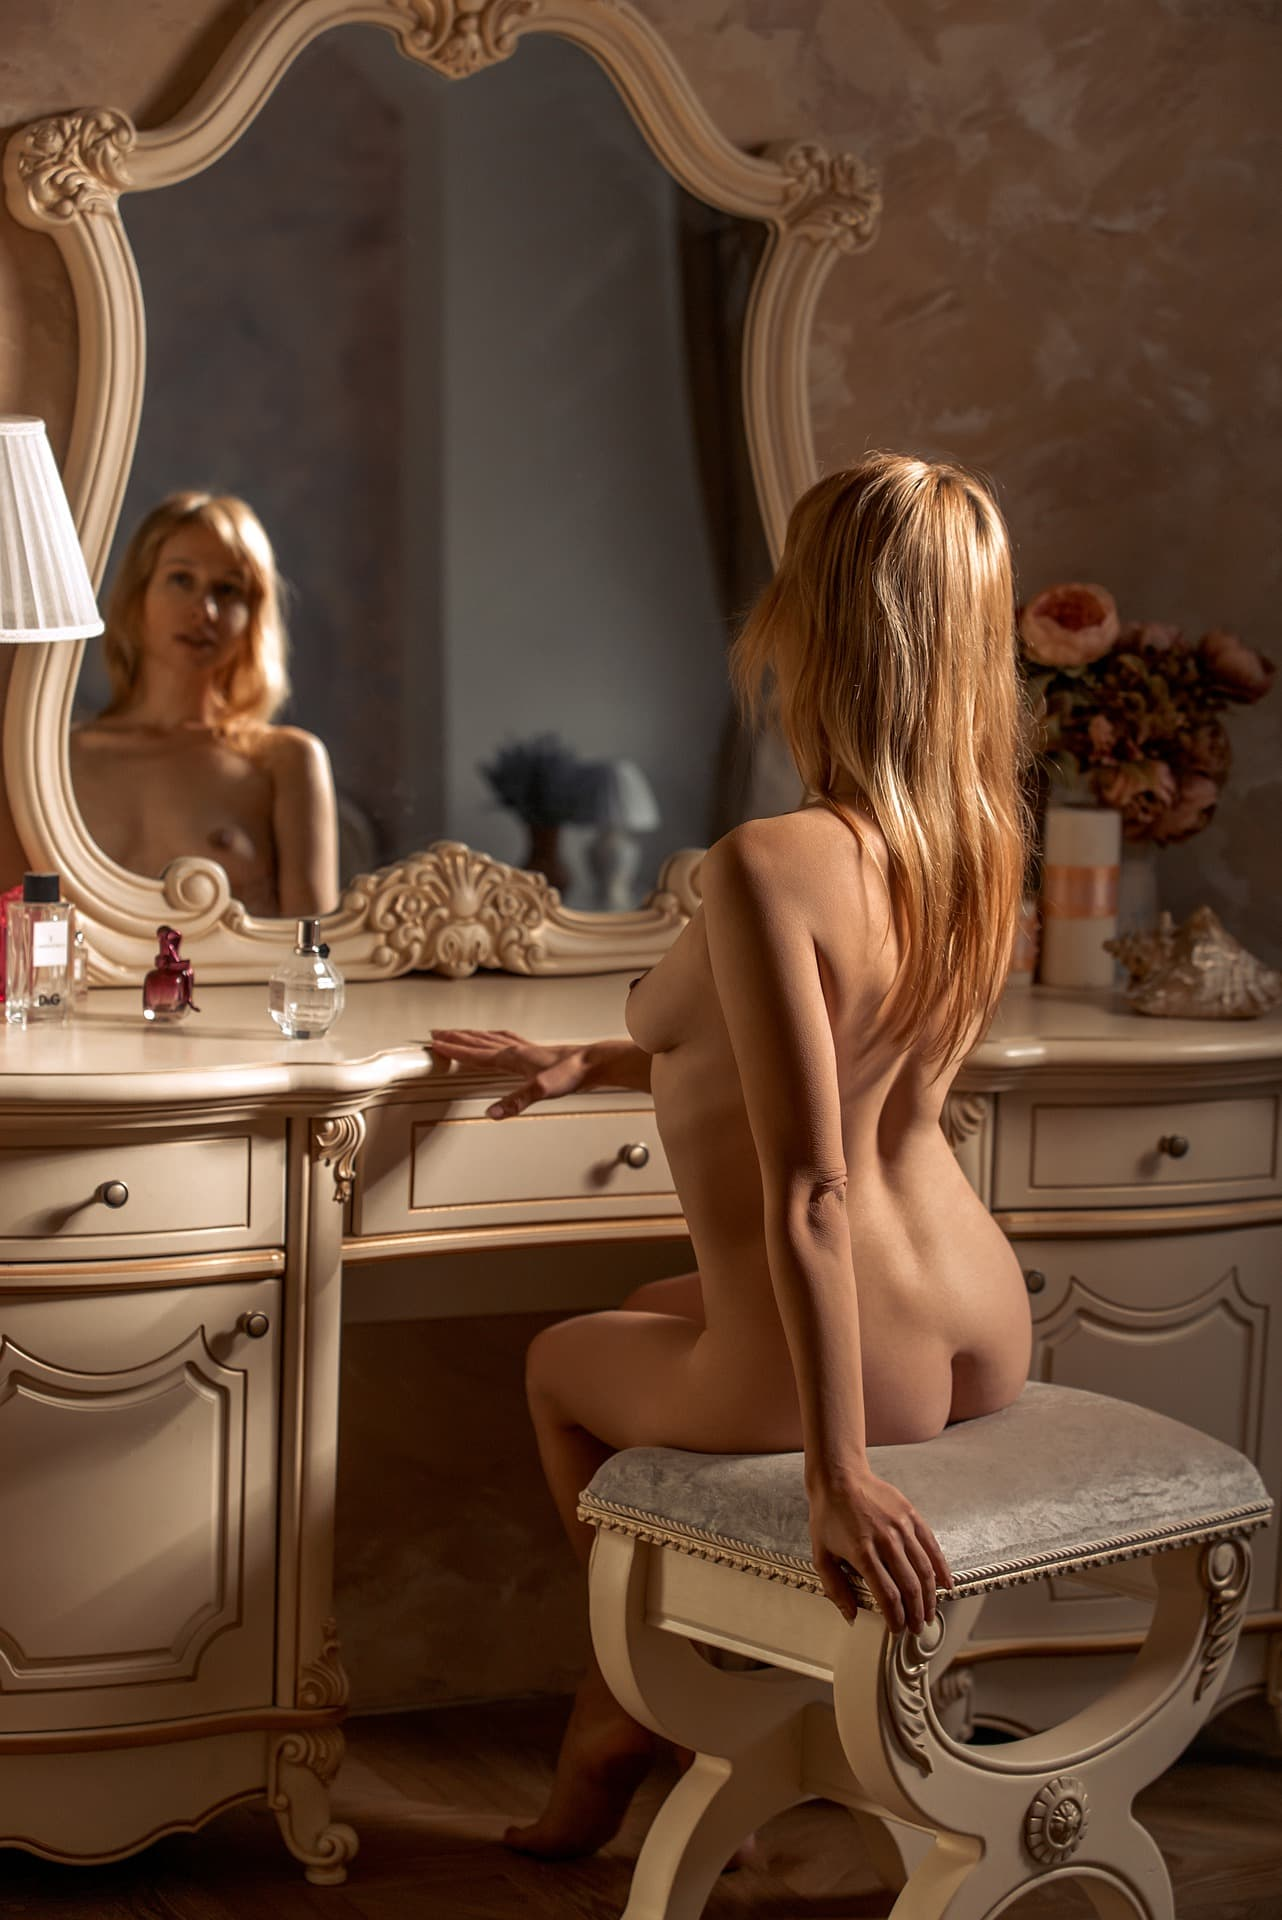 Beautiful blonde woman Victoria Borodinova sitting in the nude in front of a vintage dresser for a boudoir photoshoot